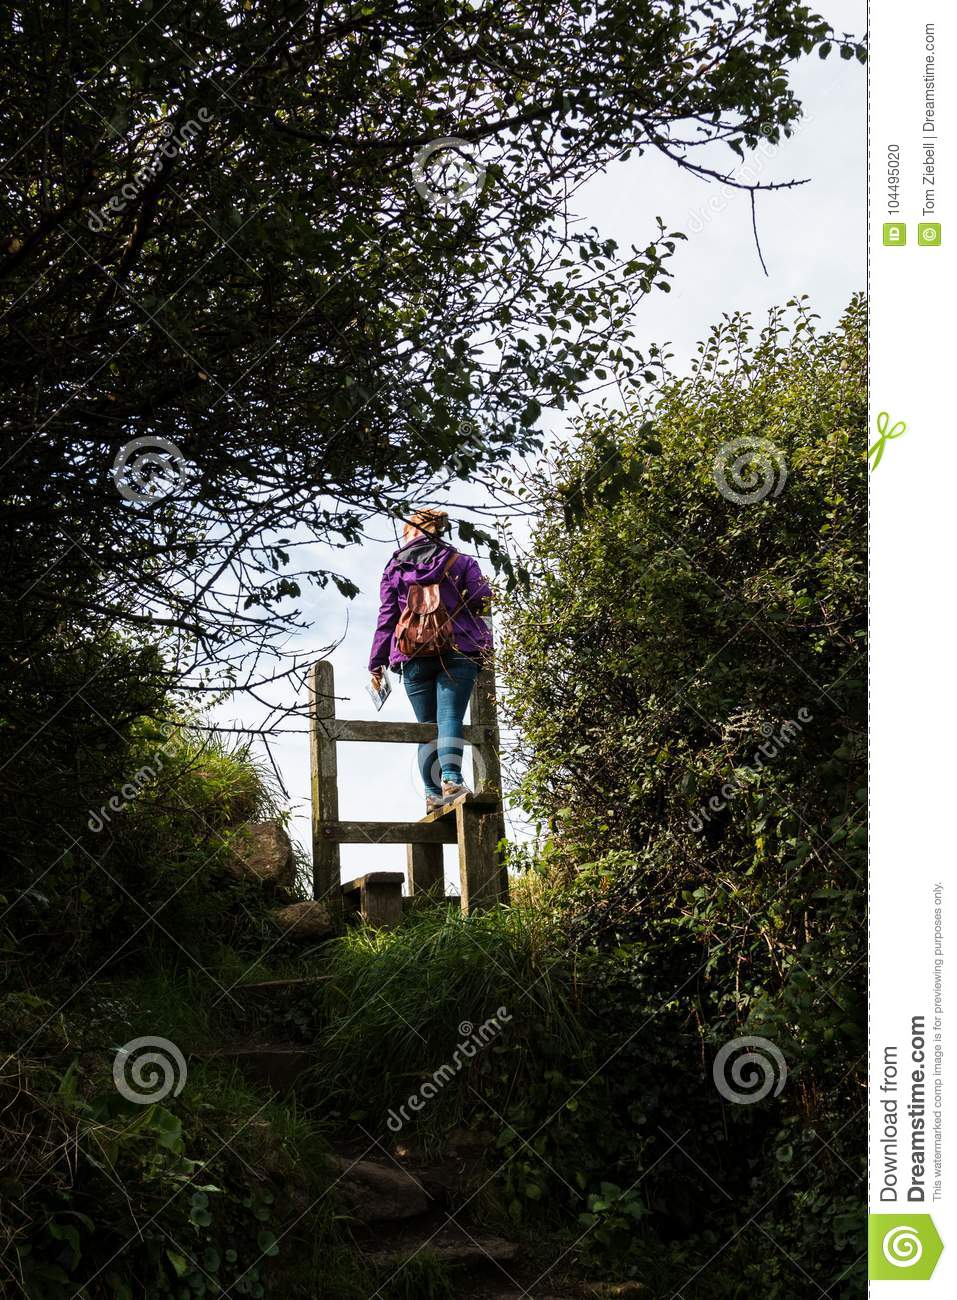 An English Country Stile With Woman Stock Photo Image Of Gate